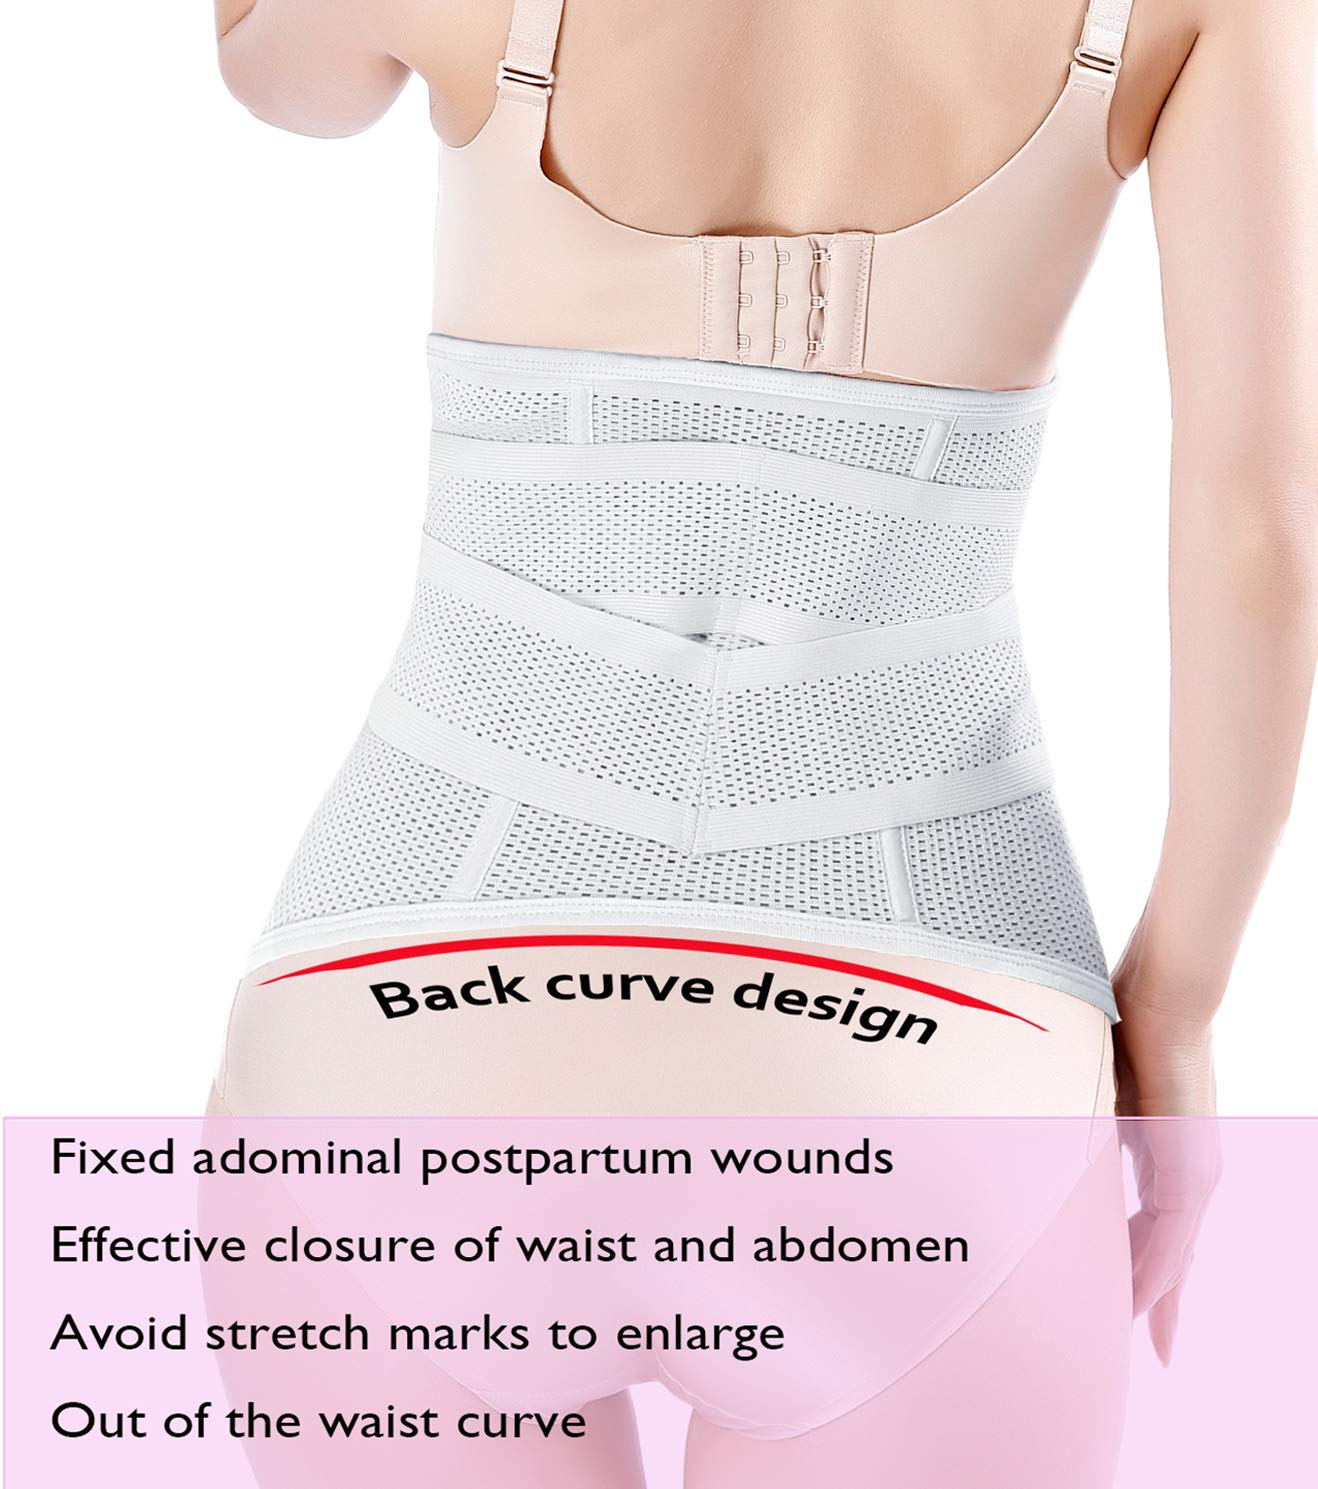 Postpartum Belly Wrap C section Recovery Belt Belly Band Binder Back Support Waist Shapewear